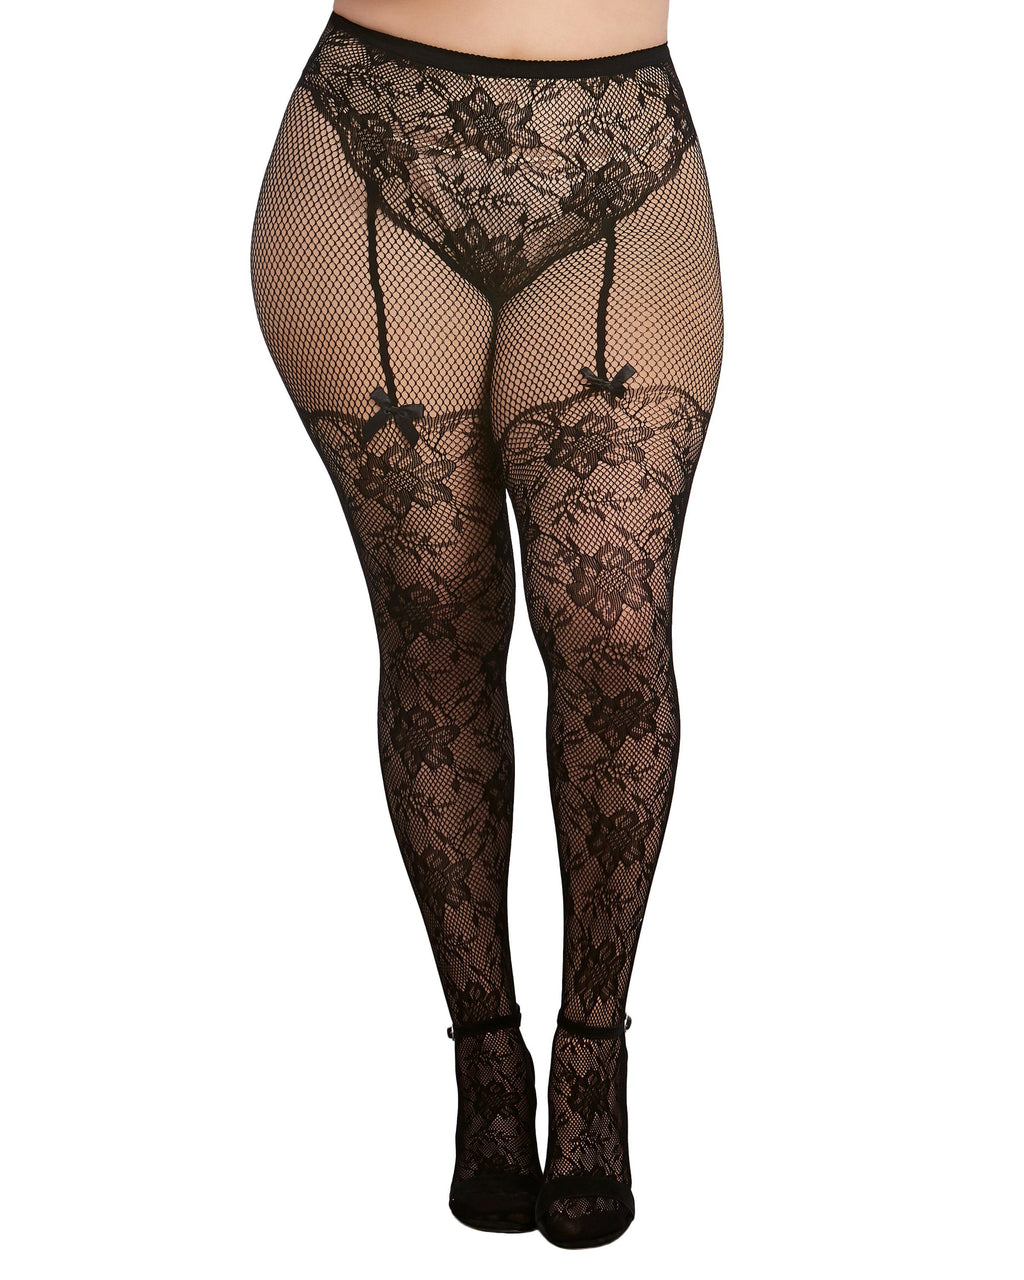 Plus Size Lace and Fishnet Pantyhose with High-Waisted Panty Design Pantyhose Dreamgirl International